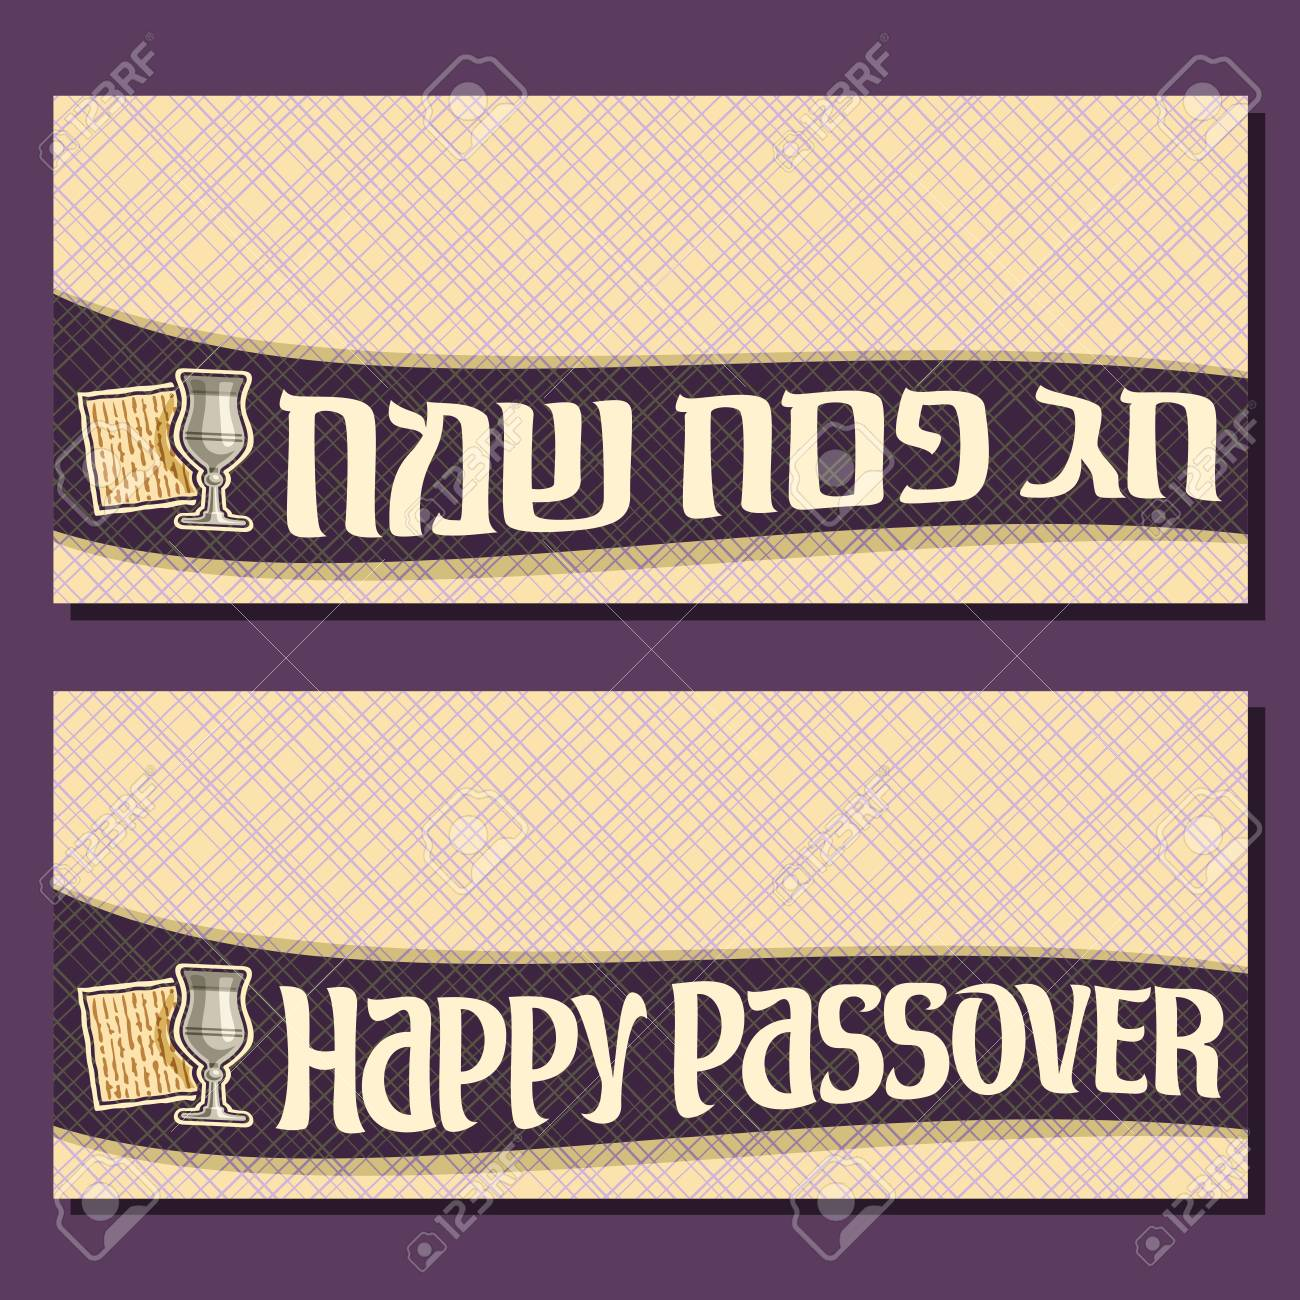 Vector greeting cards for passover holiday with copy space banners vector vector greeting cards for passover holiday with copy space banners with curved ribbon decorative handwritten font for text happy passover in m4hsunfo